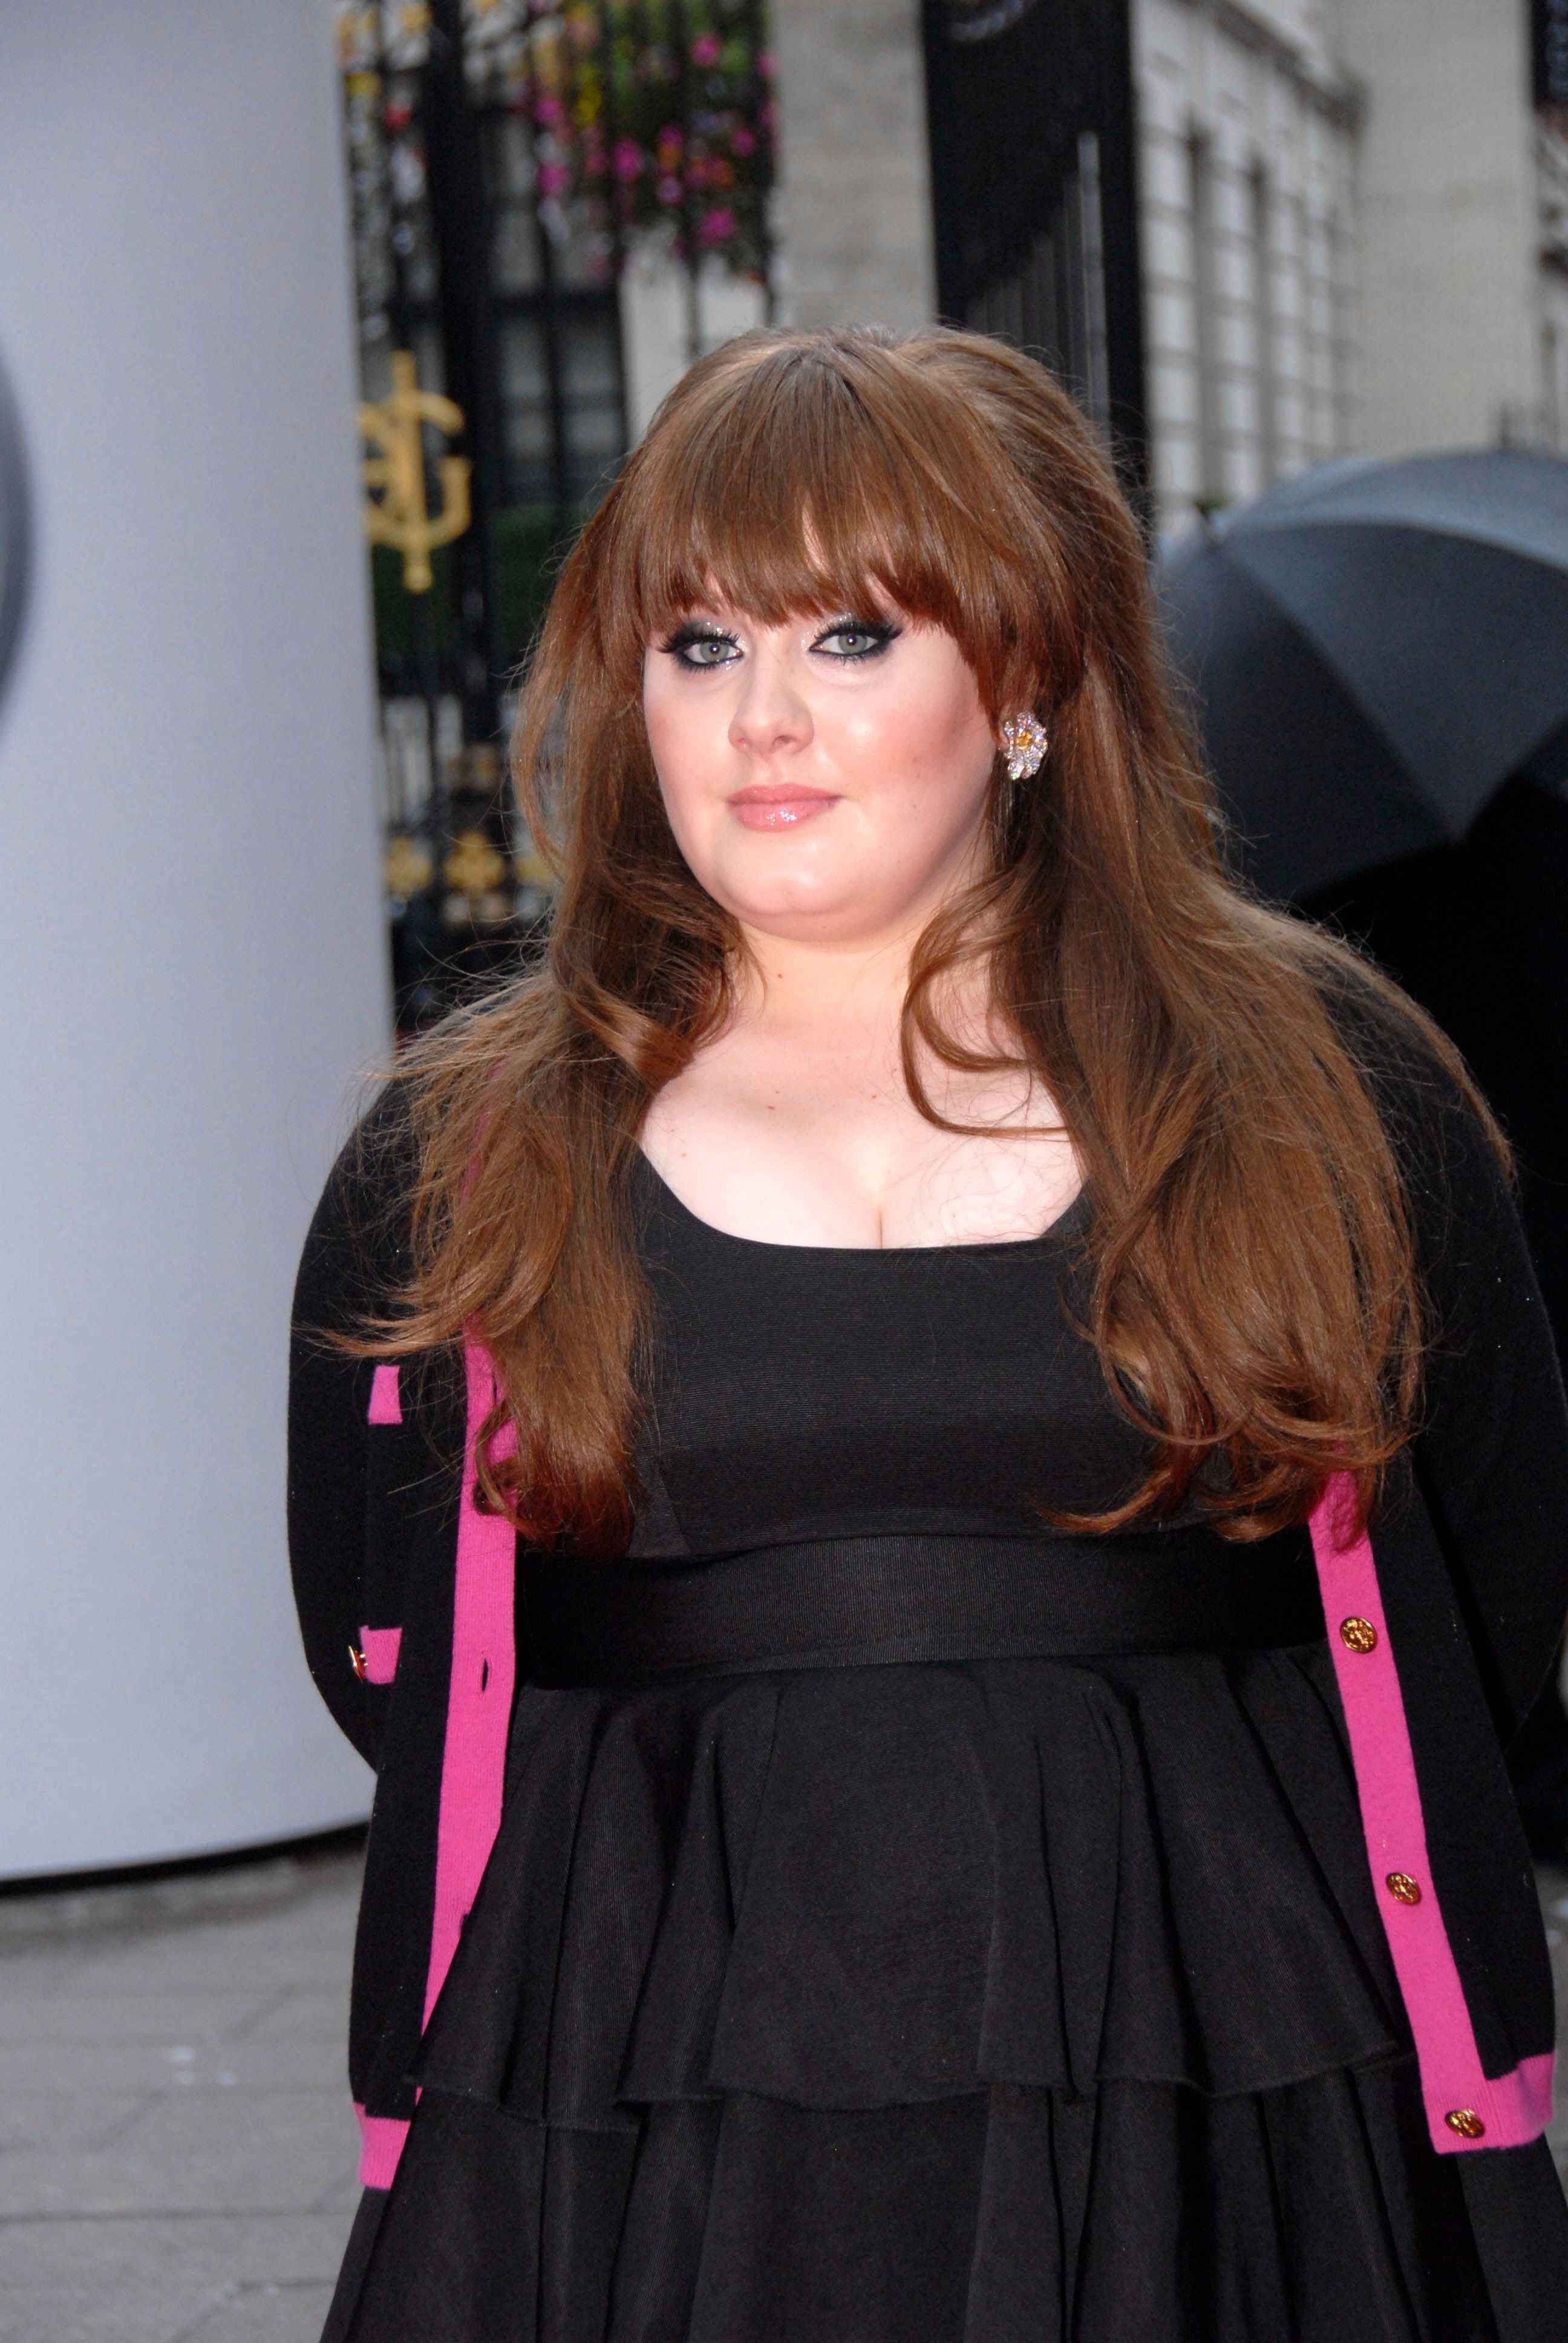 Adele arriving at Mercury Music Awards, London, 9th September 2008. | Source: Getty Images